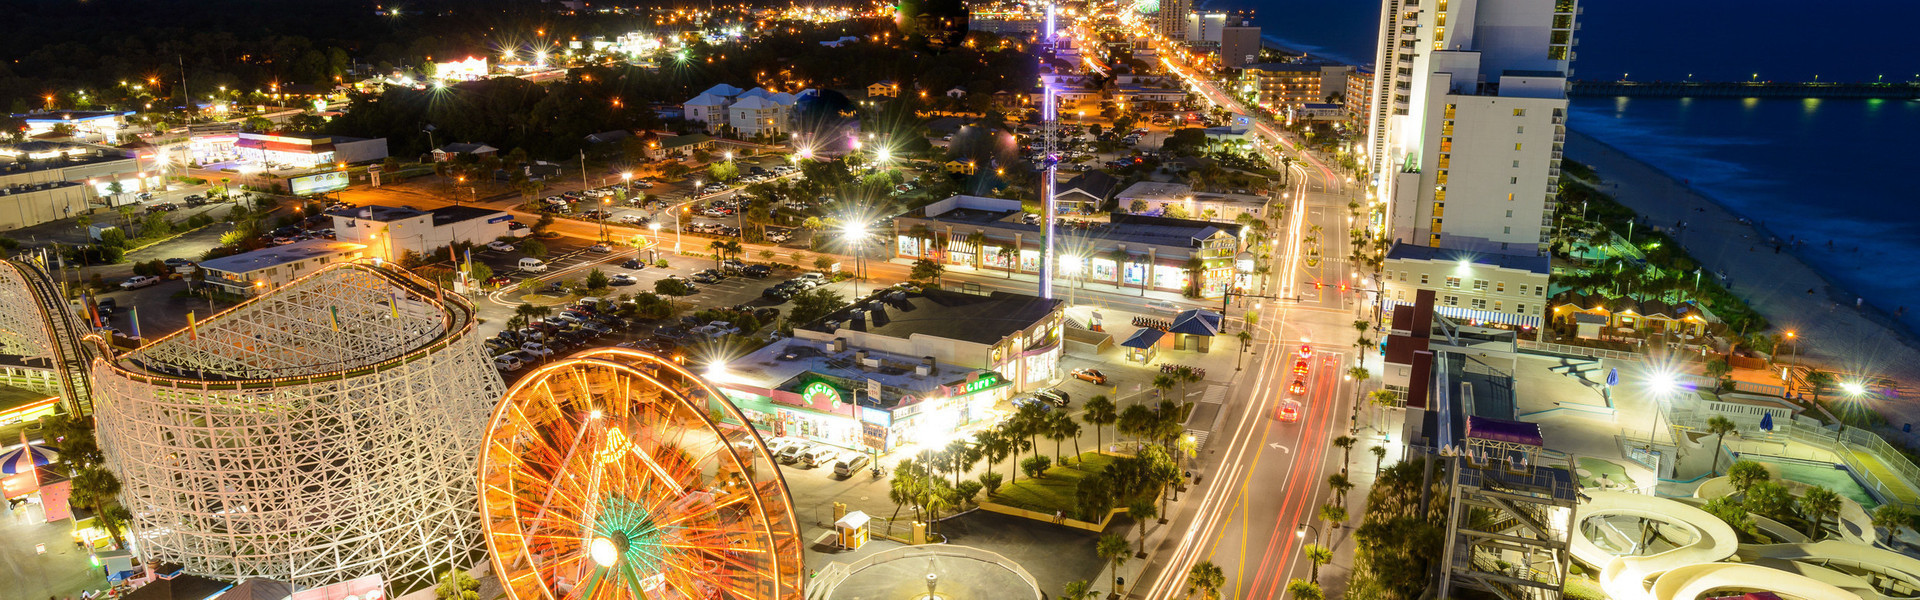 Things to Do in Myrtle Beach SC | Westgate Myrtle Beach Oceanfront Resort